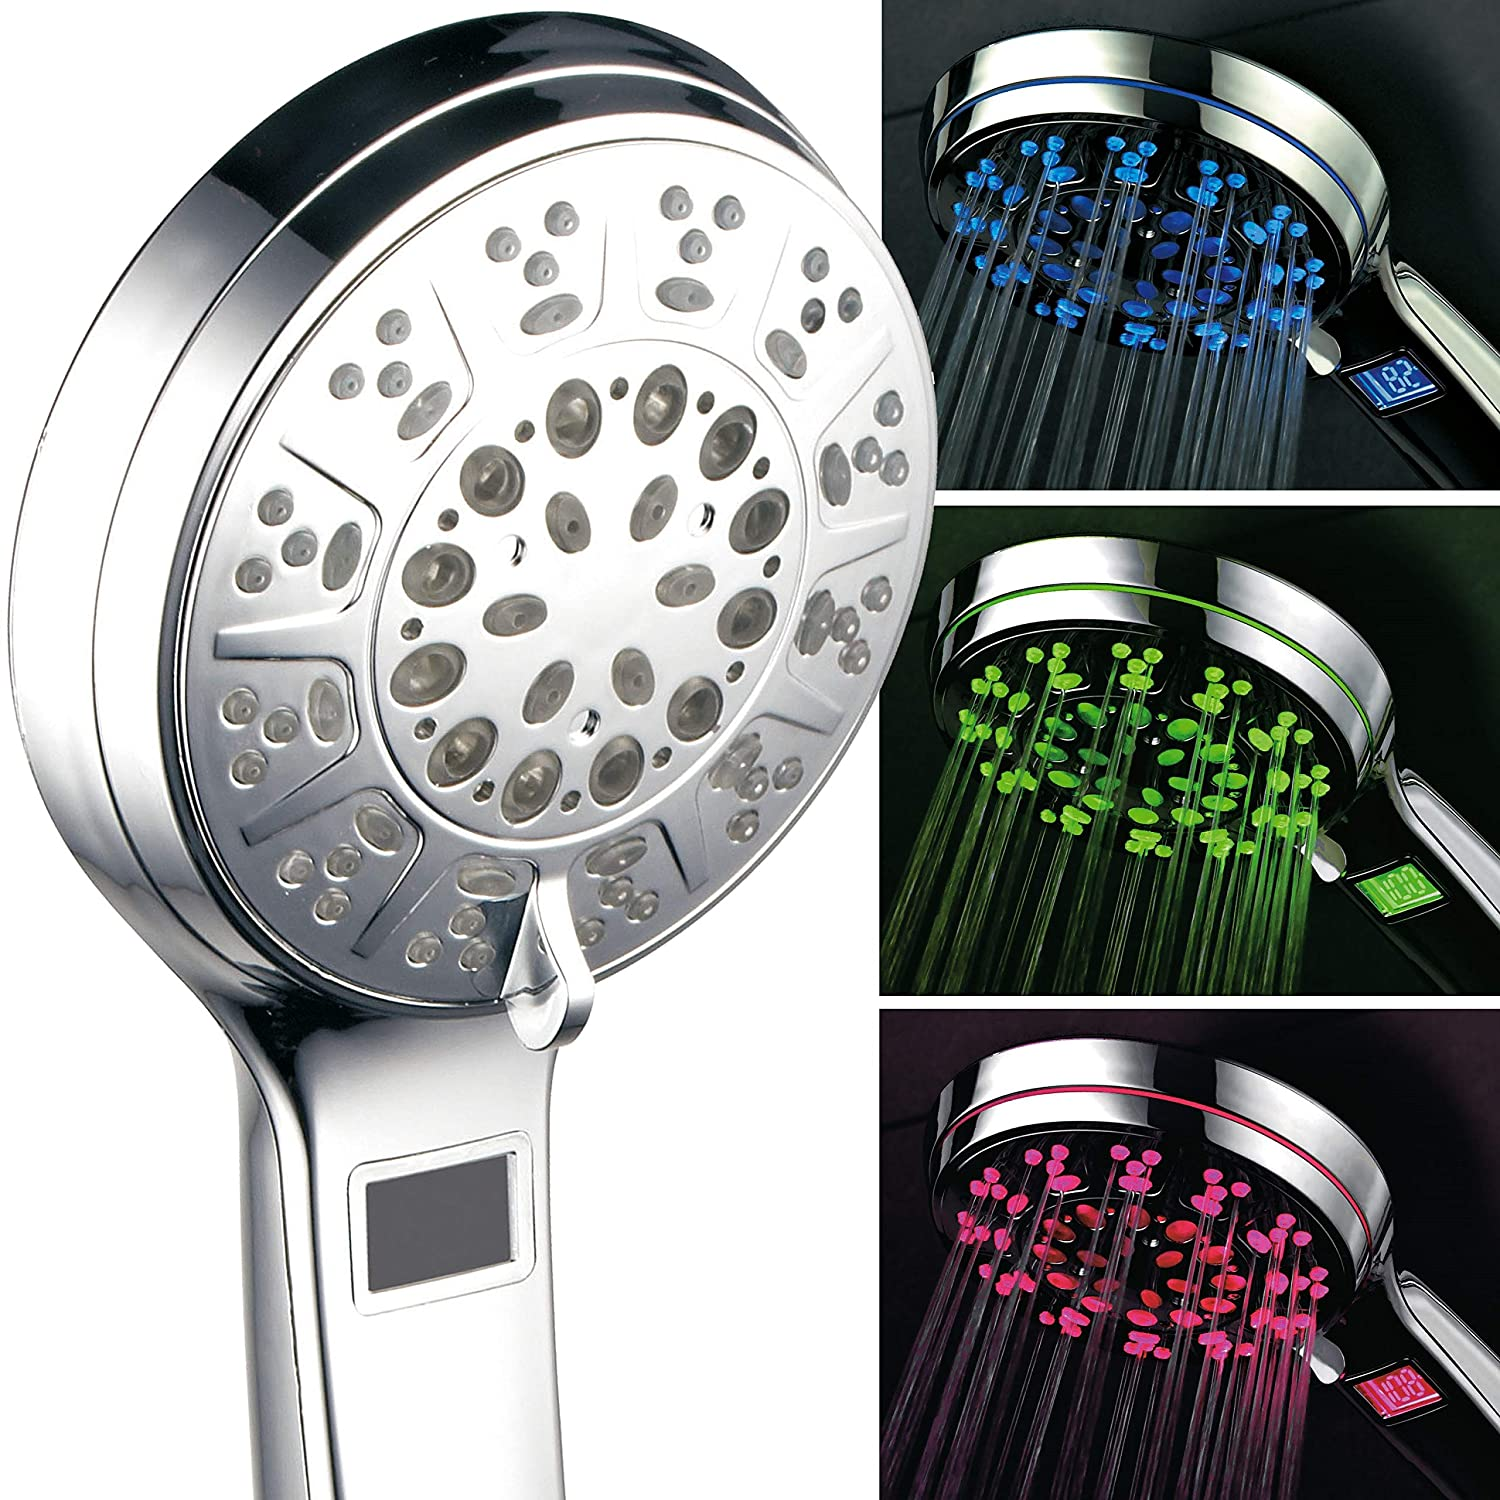 Hotelspa 3 Colors Led Hand Shower With Temperature Display Chrome